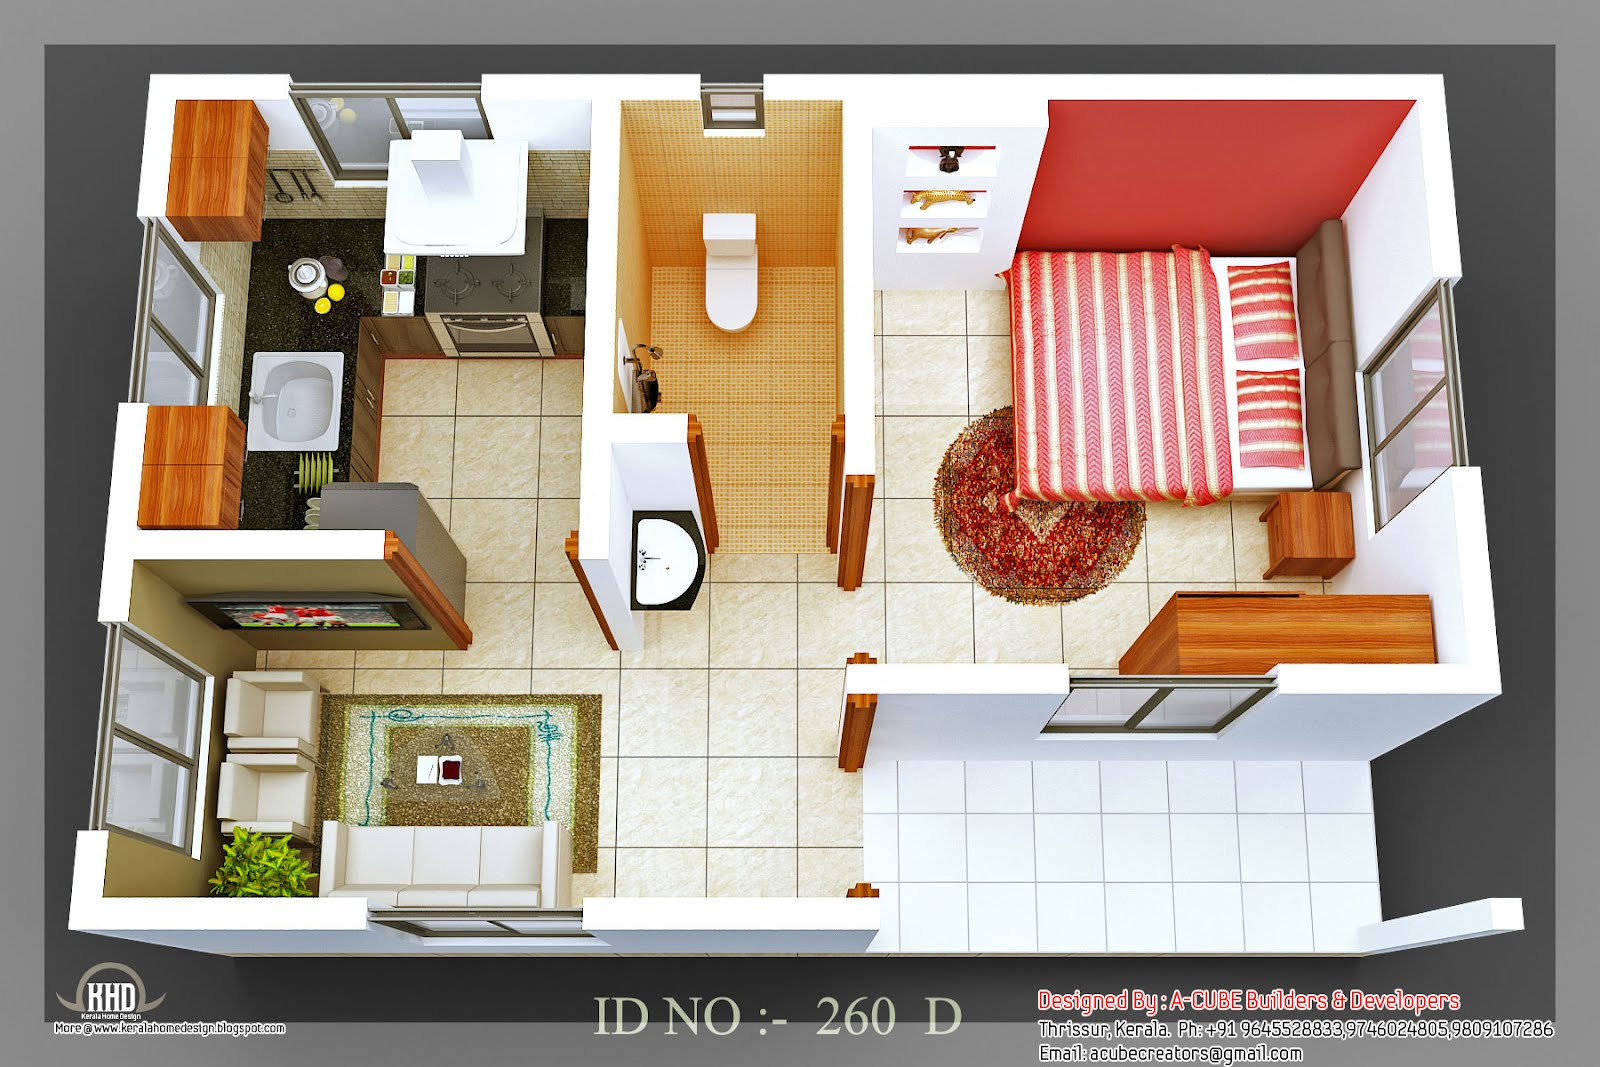 Home Design Ideas 3d: Home Appliance: September 2012